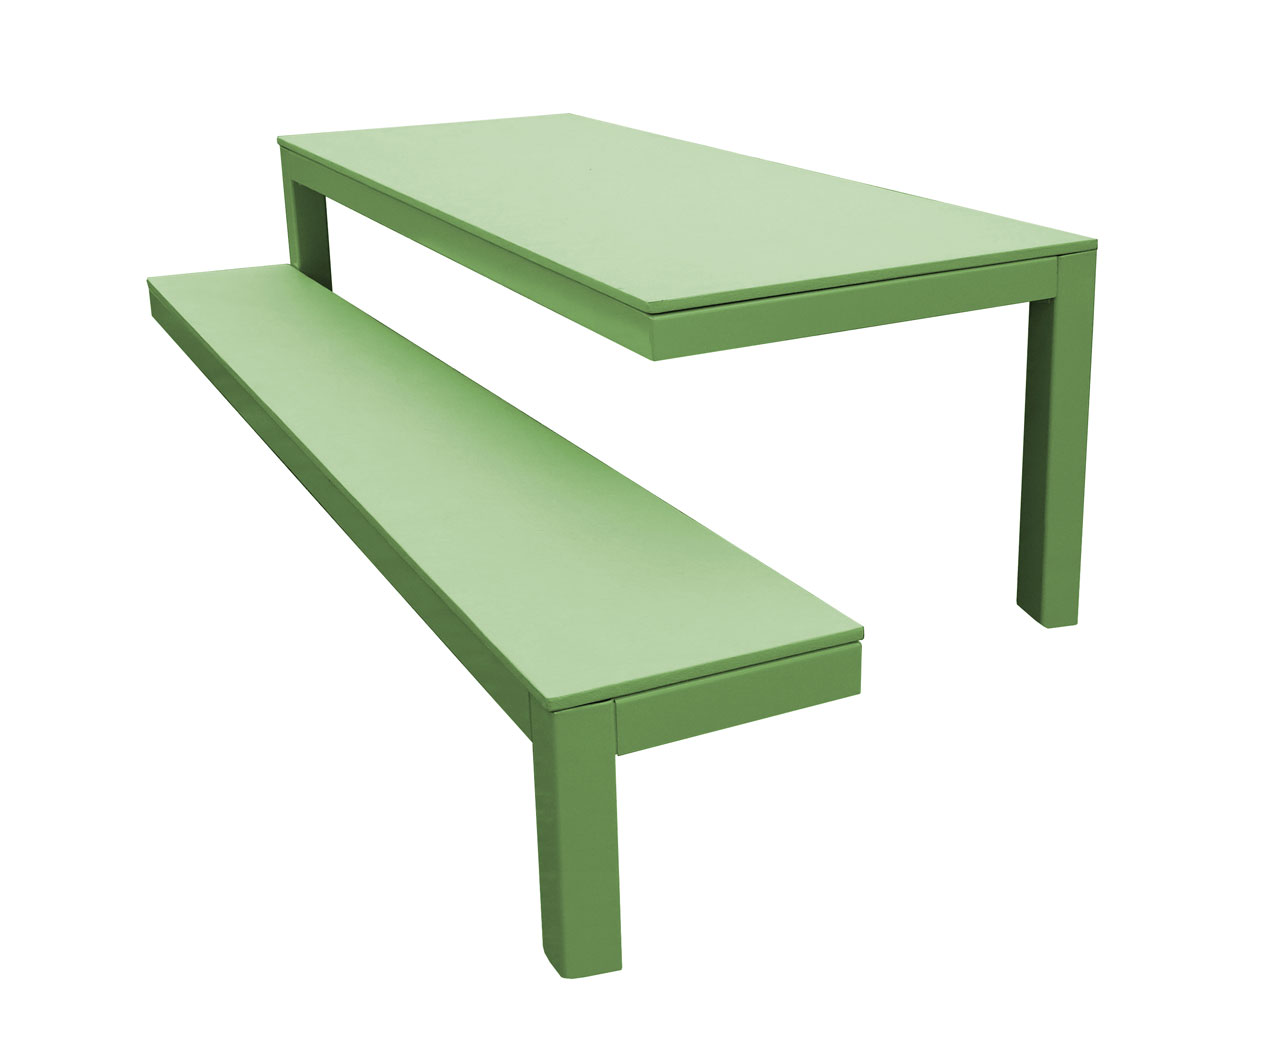 picnic product duty solid fully wet recycled plastic table heavy bench